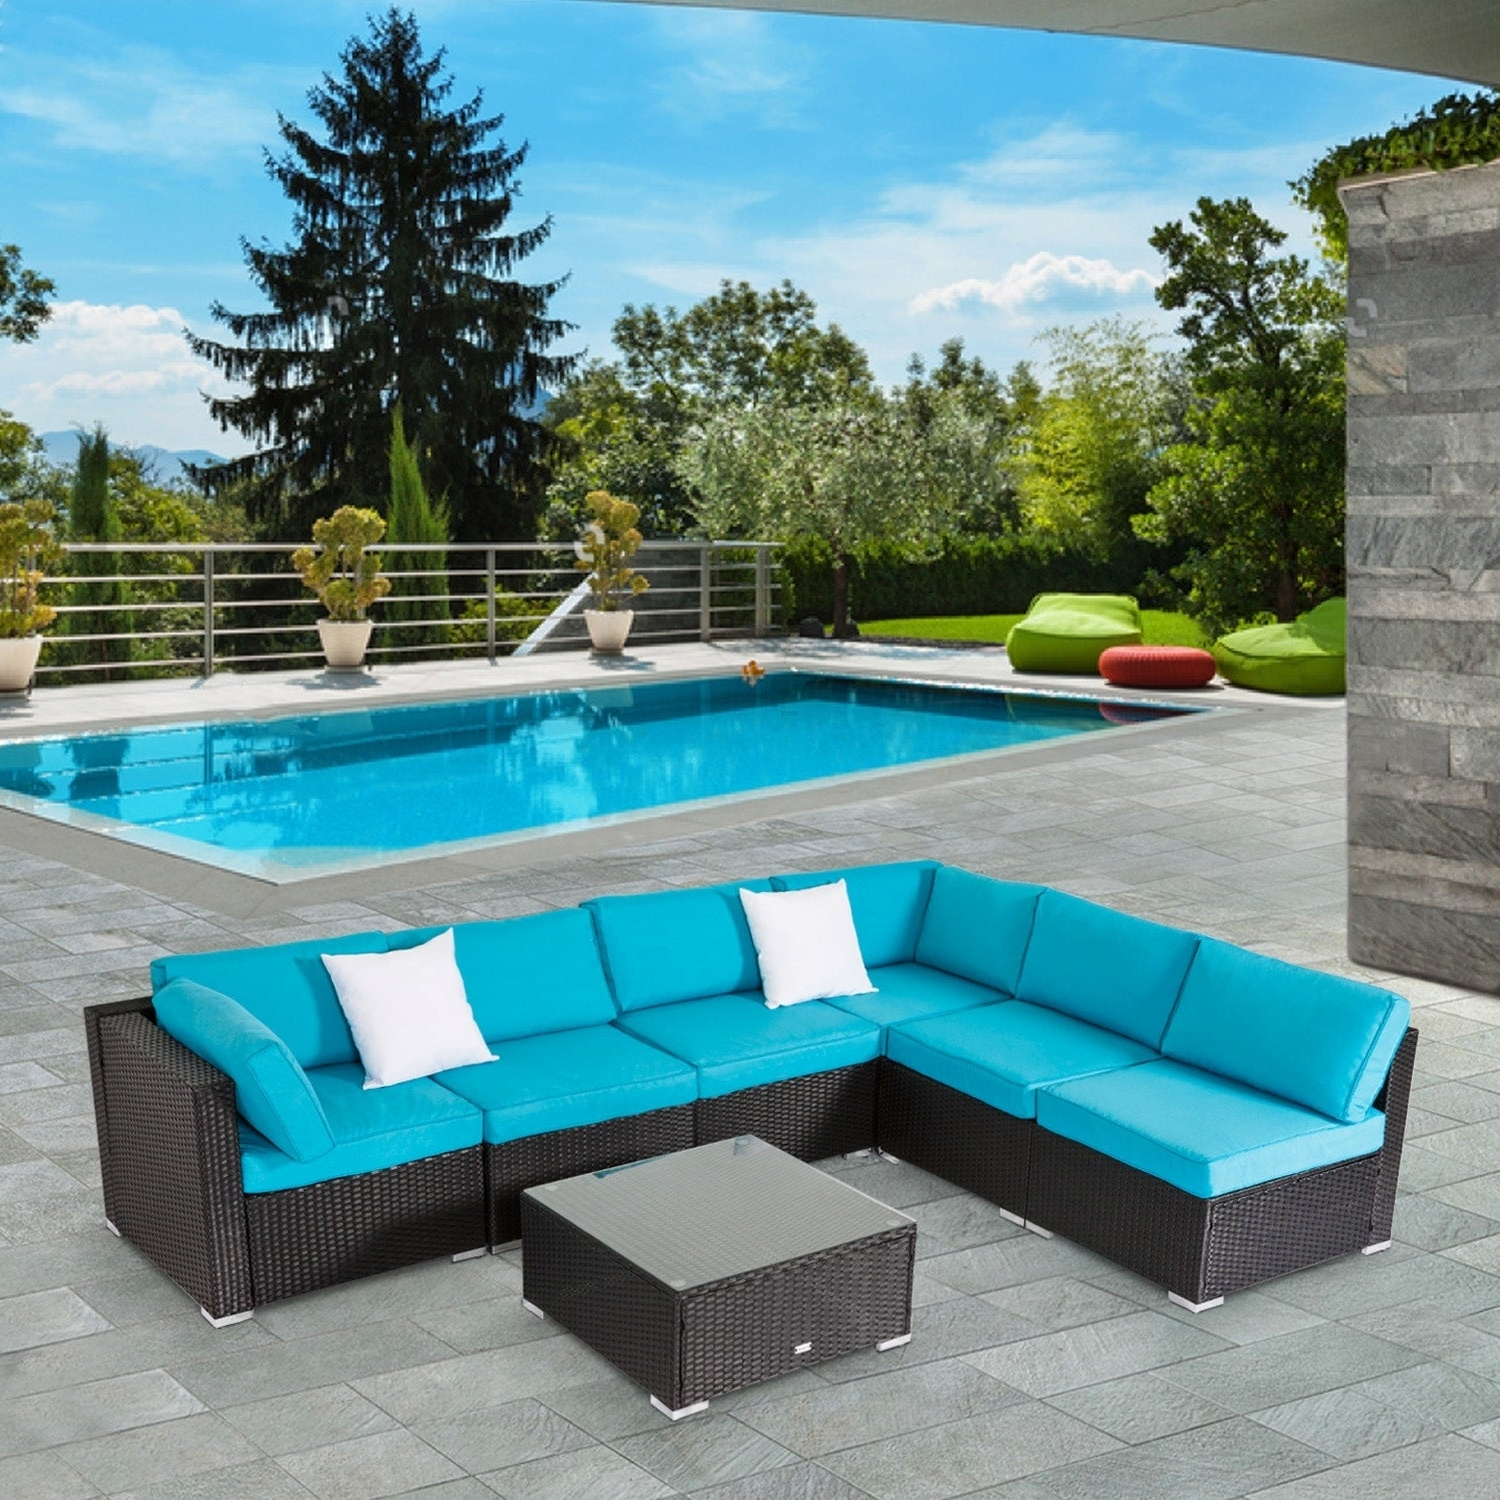 Kinbor 7 Piece Patio Furniture Set All Weather Outdoor Furniture Sectional  Sofa W/ Cushions Throughout Newest Patio Sofas With Cushions (View 7 of 20)